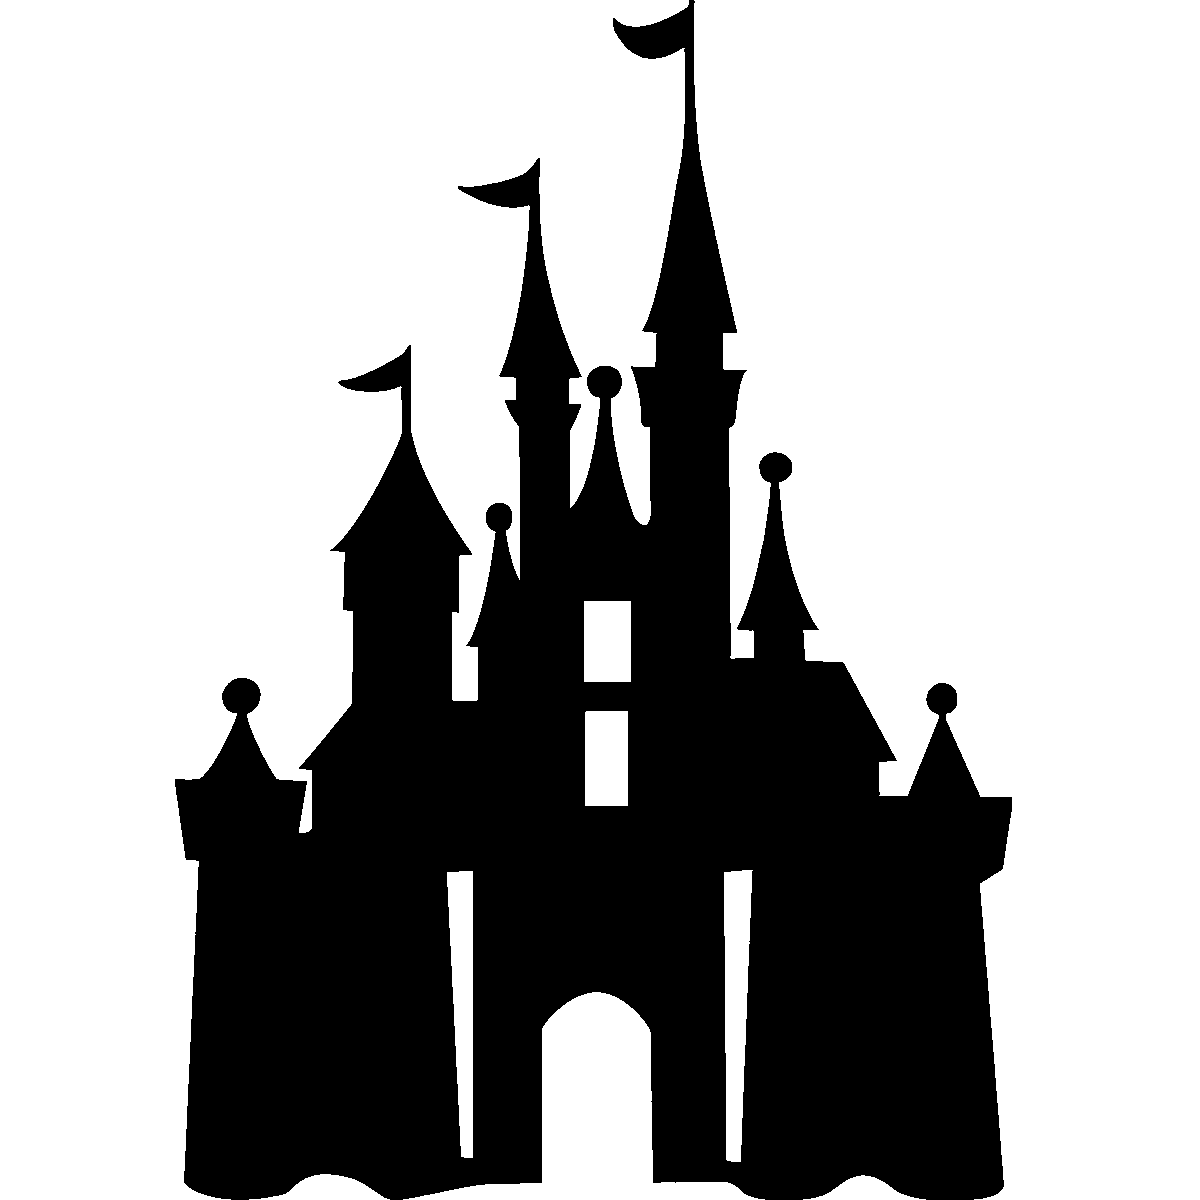 Clipart castle silhouette. Magic kingdom at getdrawings